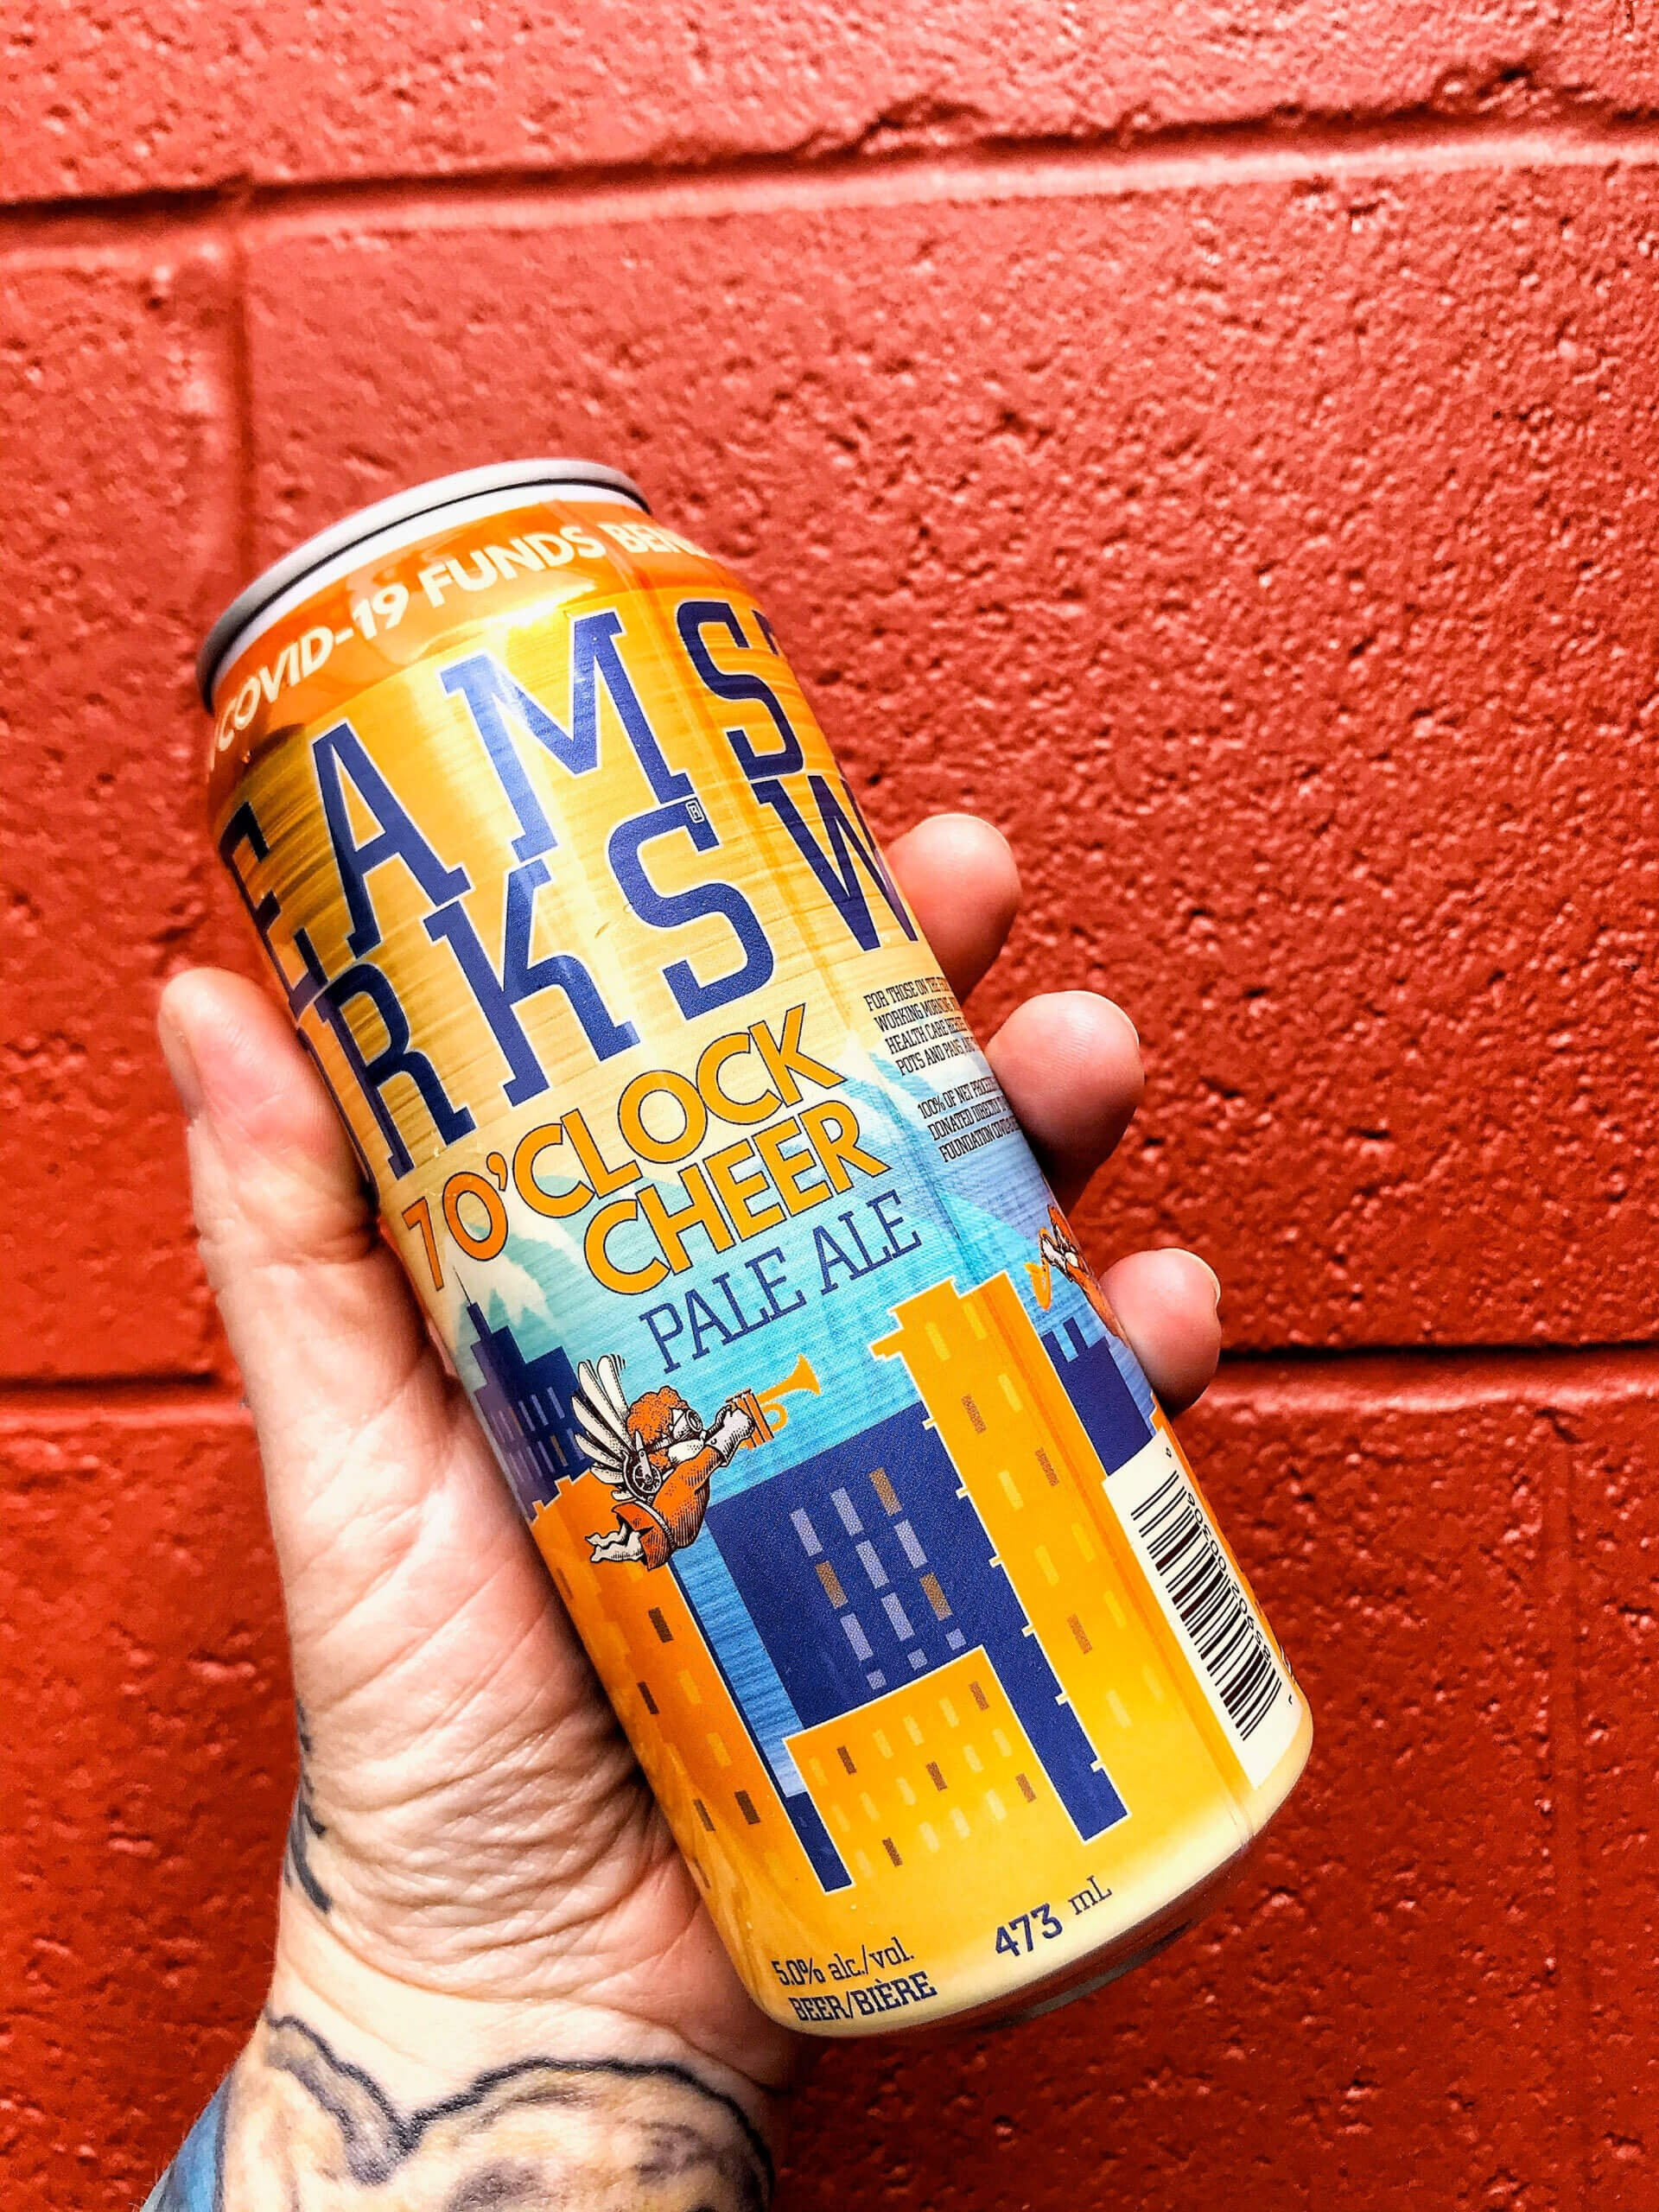 473 ml can of the 7 O'clock Cheer Pale by Steamworks Brewing Company